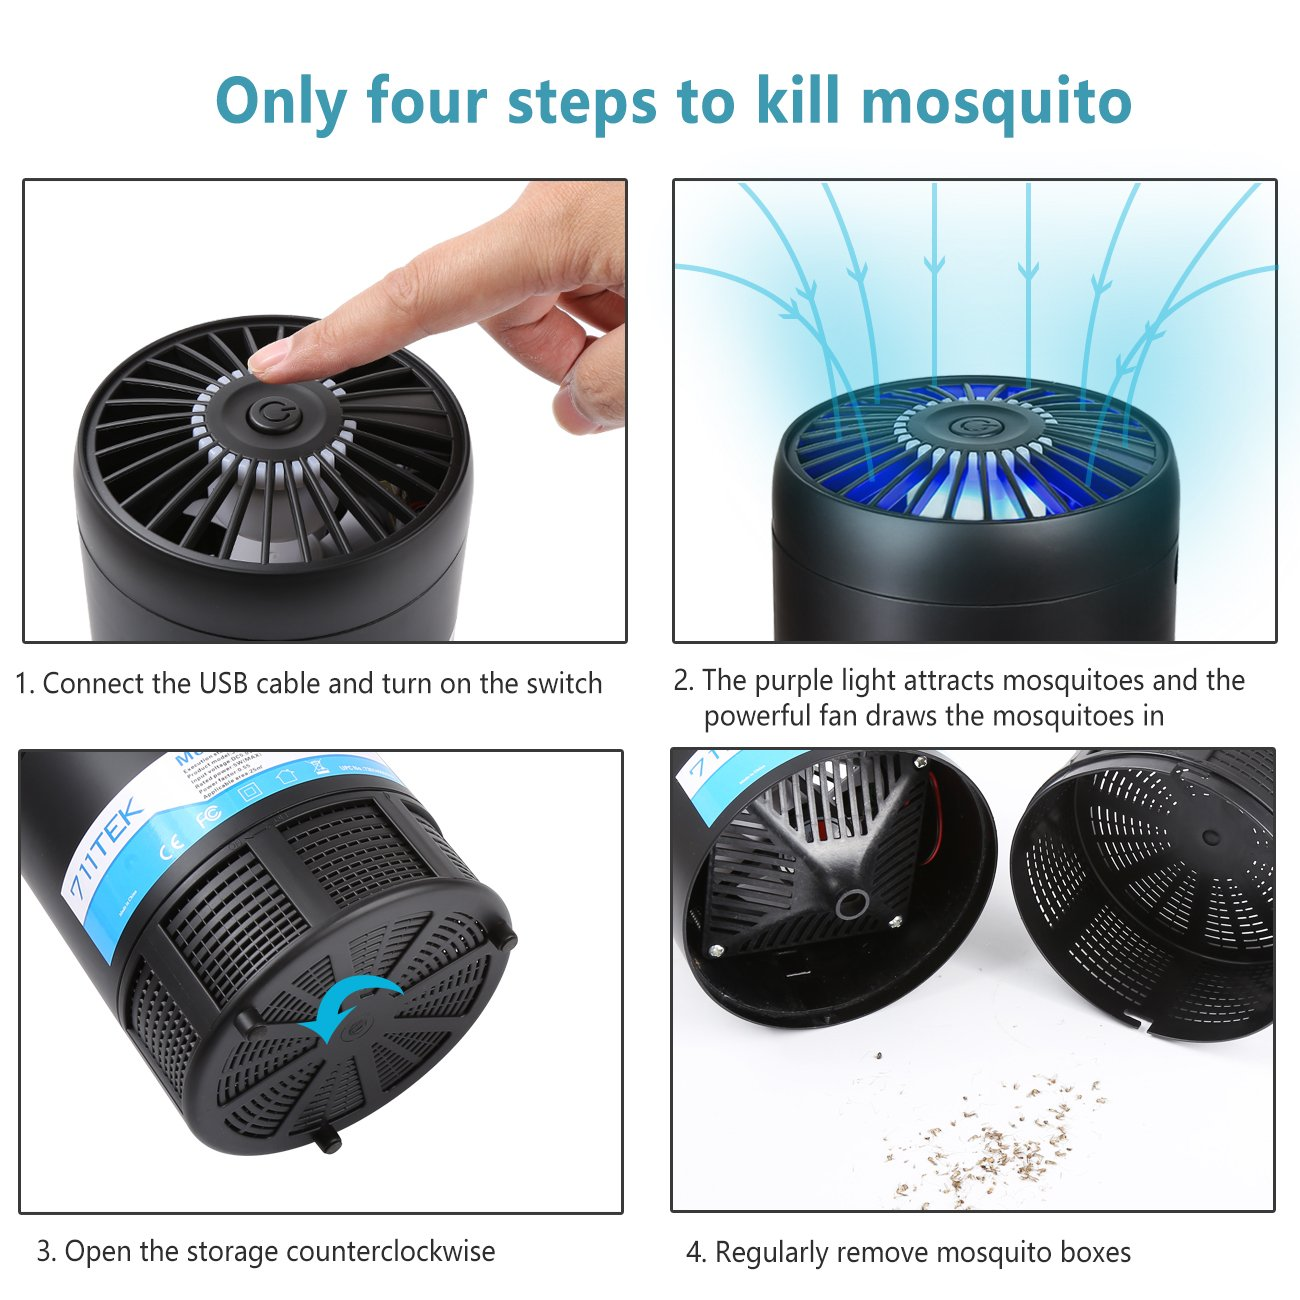 711TEK Moaquito Killer, USB Powered Non-toxic UV LED Insect Killer, Electronic Mosquito Trap Lamp, Bug Zapper with Eco-friendly for Indoor & Outdoor Use Black